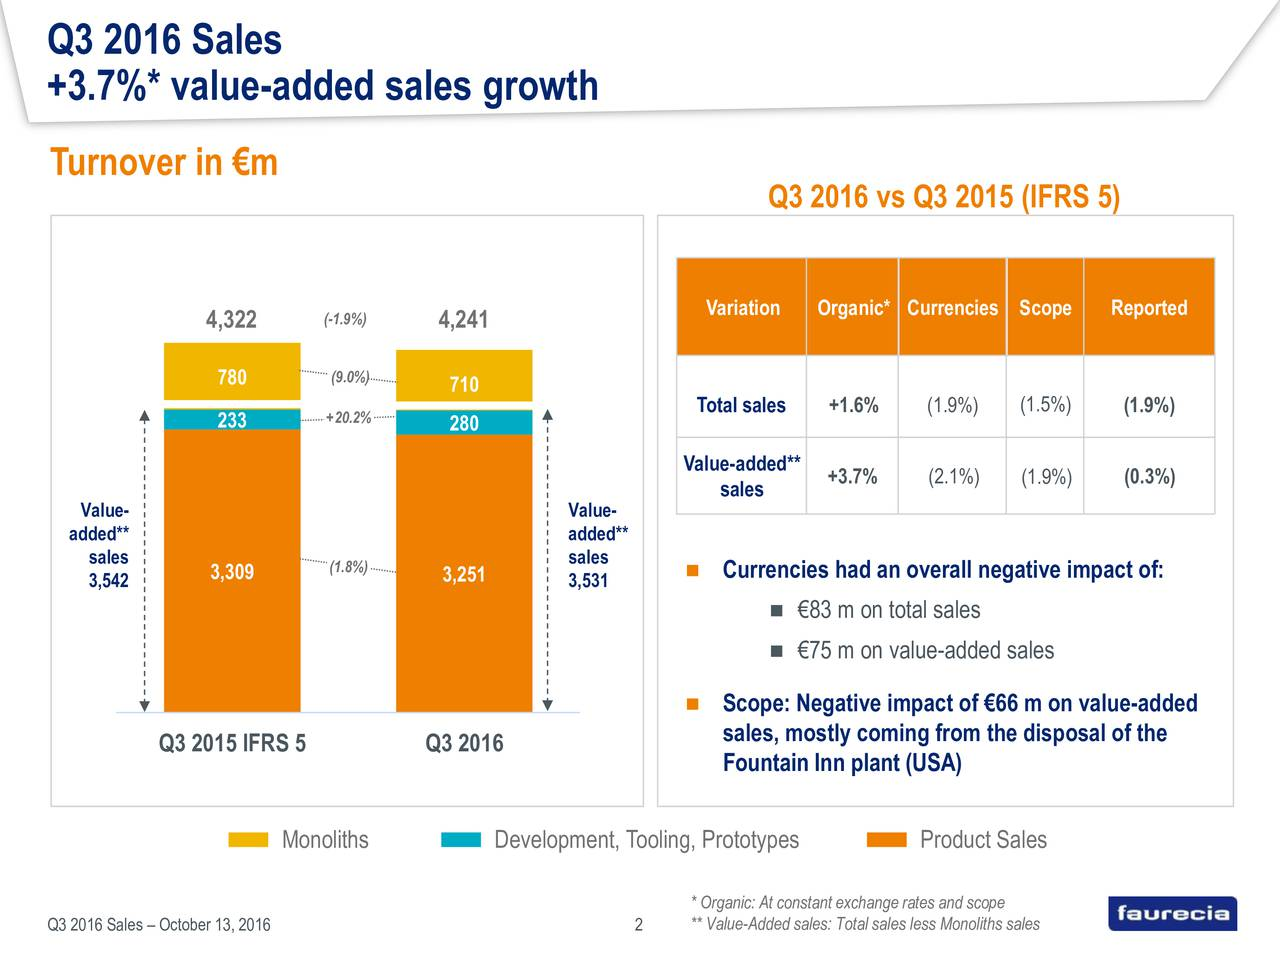 +3.7%* value-added sales growth Turnover in m Q3 2016 vs Q3 2015 (IFRS 5) Variation Organic* Currencies Scope Reported 4,322 (-1.9%) 4,241 780 (9.0%) 710 Total sales +1.6% (1.9%) (1.5%) (1.9%) 233 +20.2% 280 Value-added** sales +3.7% (2.1%) (1.9%) (0.3%) Value- Value- added** added** sales sales 3,542 3,309 (1.8%) 3,251 3,531  Currencies had an overall negative impact of: 83 m on total sales 75 m on value-added sales Scope: Negative impact of 66 m on value-added sales, mostly coming from the disposal of the Q3 2015 IFRS 5 Q3 2016 Fountain Inn plant (USA) Monoliths Development, Tooling, Prototypes Product Sales * Organic: At constant exchange rates and scope October 13, 2016 2 ** Value-Added sales: Total sales less Monoliths sales